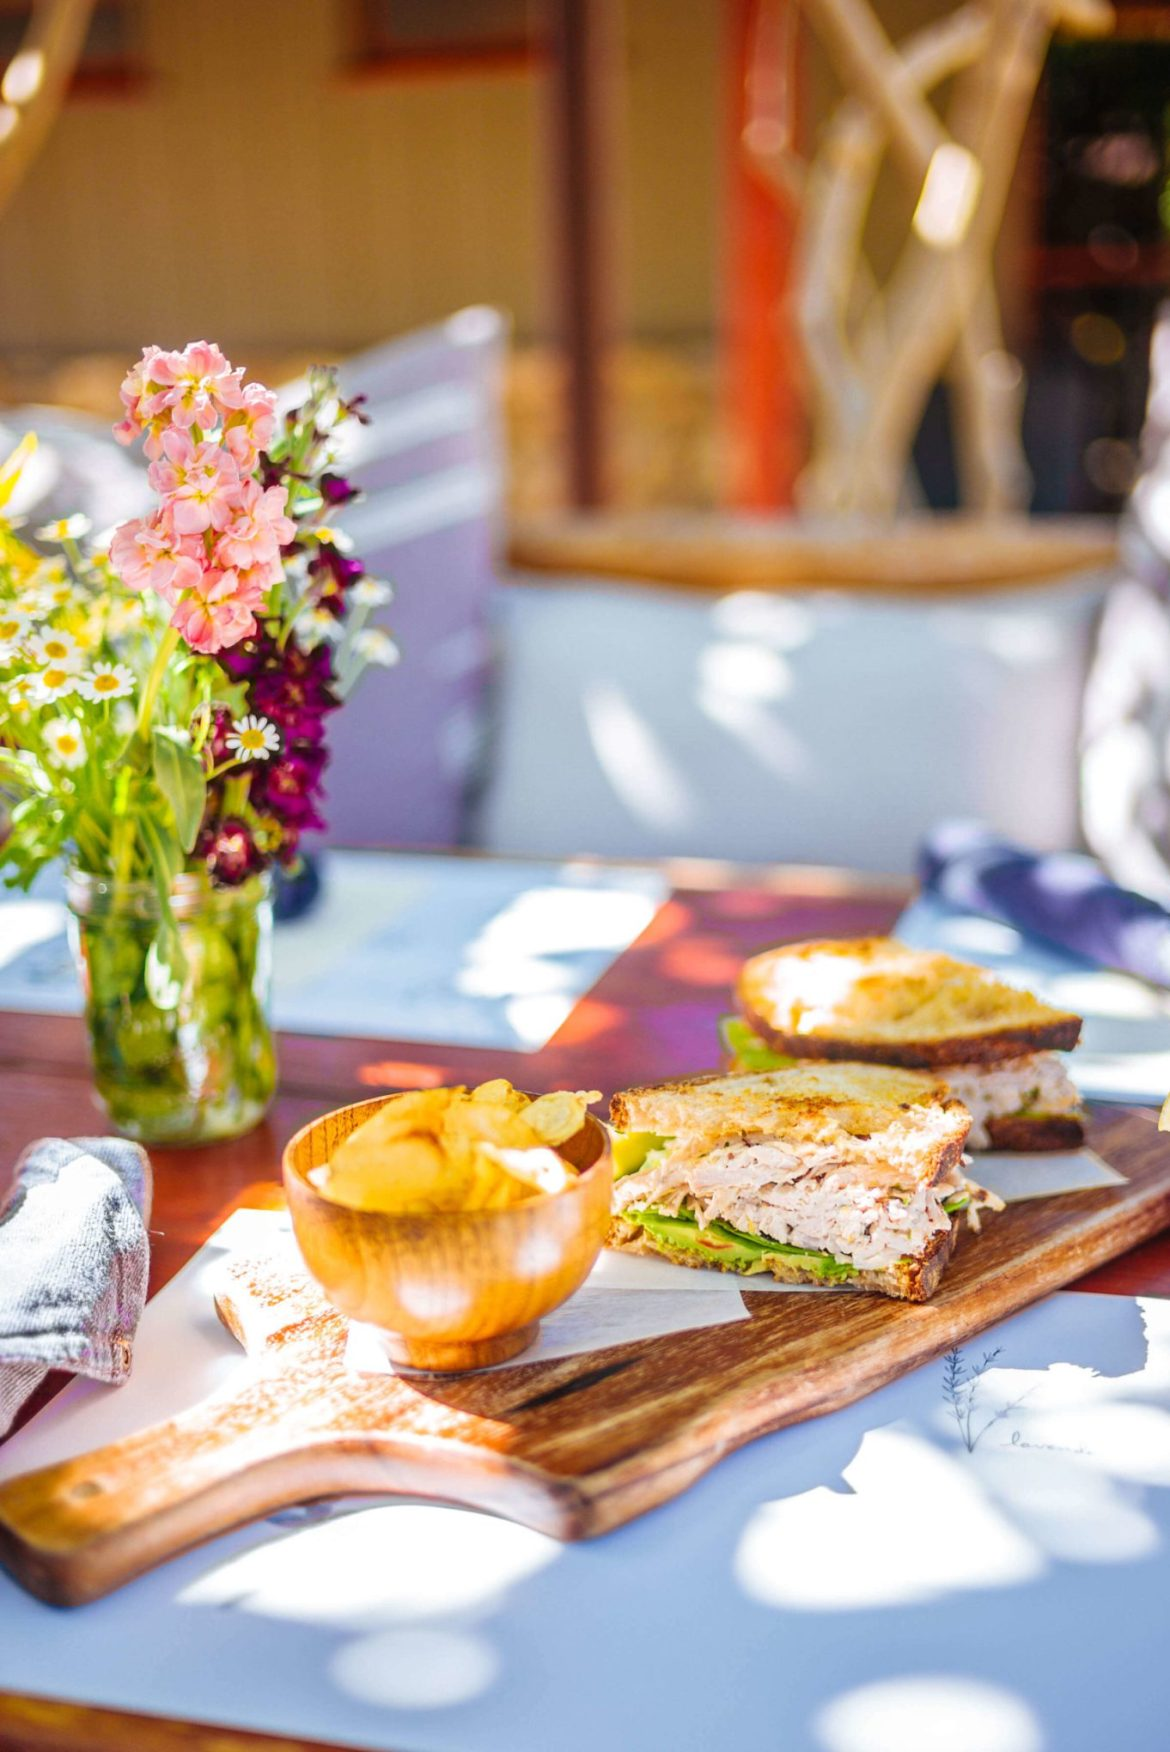 Visit the Barn Kitchen at Sparrows Lodge in Palm Springs for the best lunch under the orange trees and this perfect chicken salad sandwich for lunch, thetasteedit #hotel #salad #palmsprings #travel